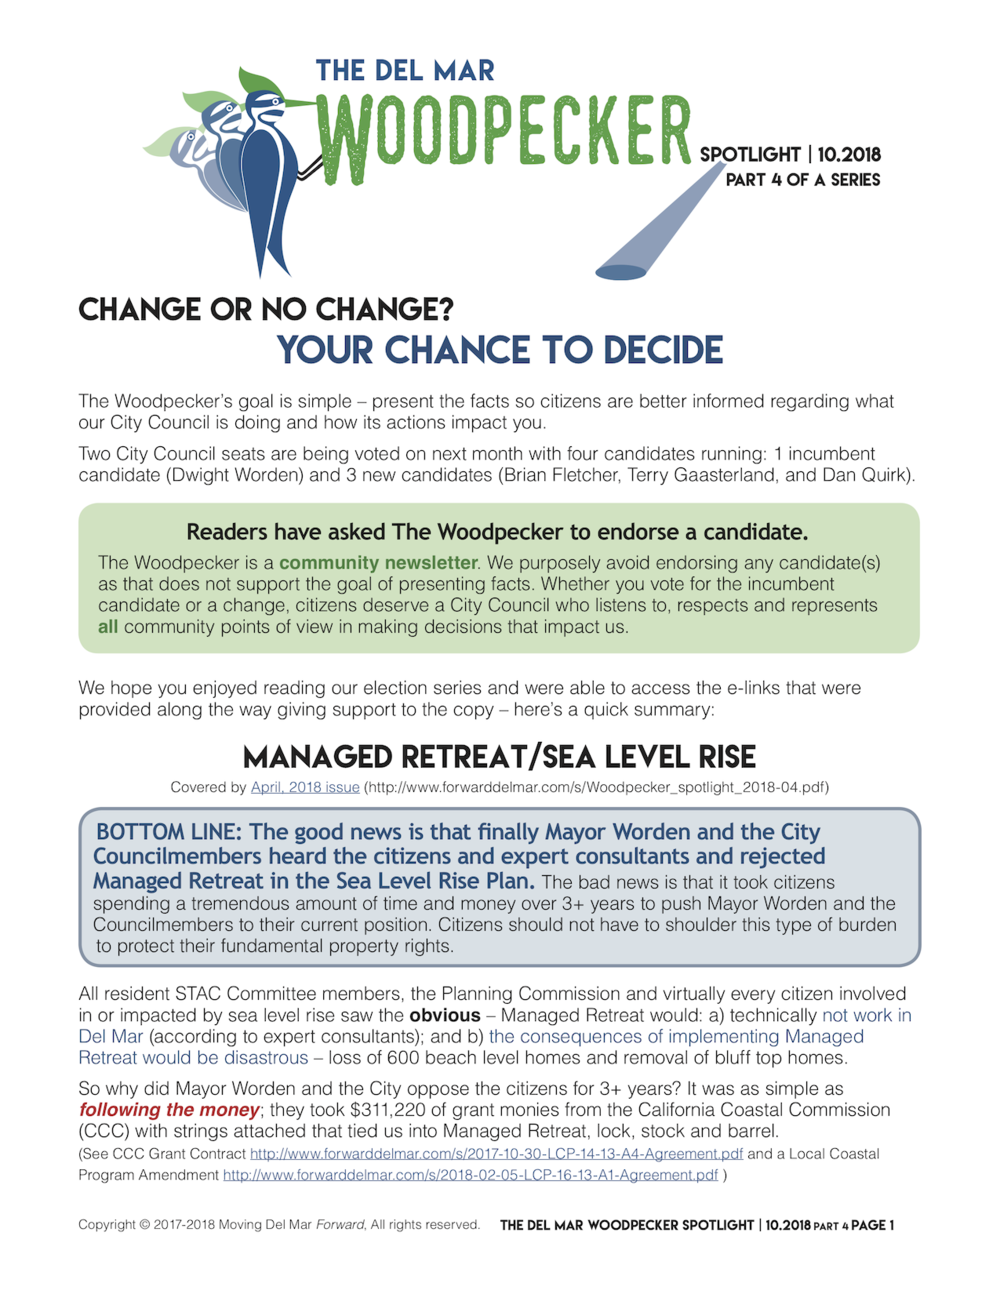 """Spotlight 10/2018 Part 4 of a Series - """"CHANGE OR NO CHANGE? YOUR CHANCE TO DECIDEThe Woodpecker's goal is simple – present the facts so citizens are better informed regarding what our City Council is doing and how its actions impact you."""""""